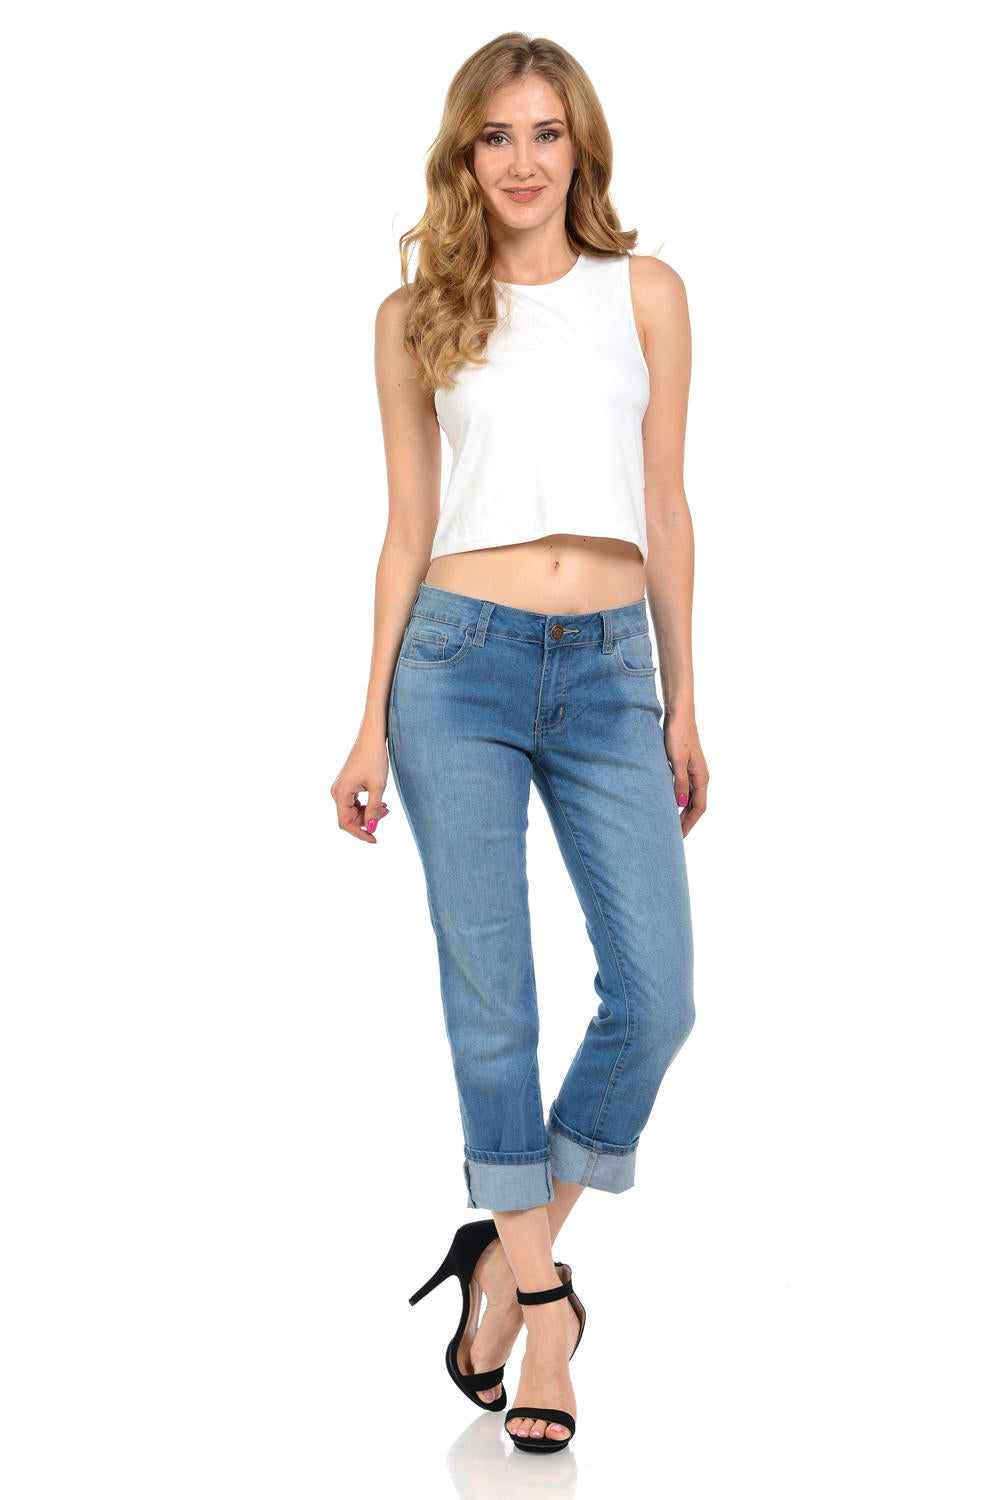 Sweet Look Premium Edition Women's Jeans - Push Up - Style N575E